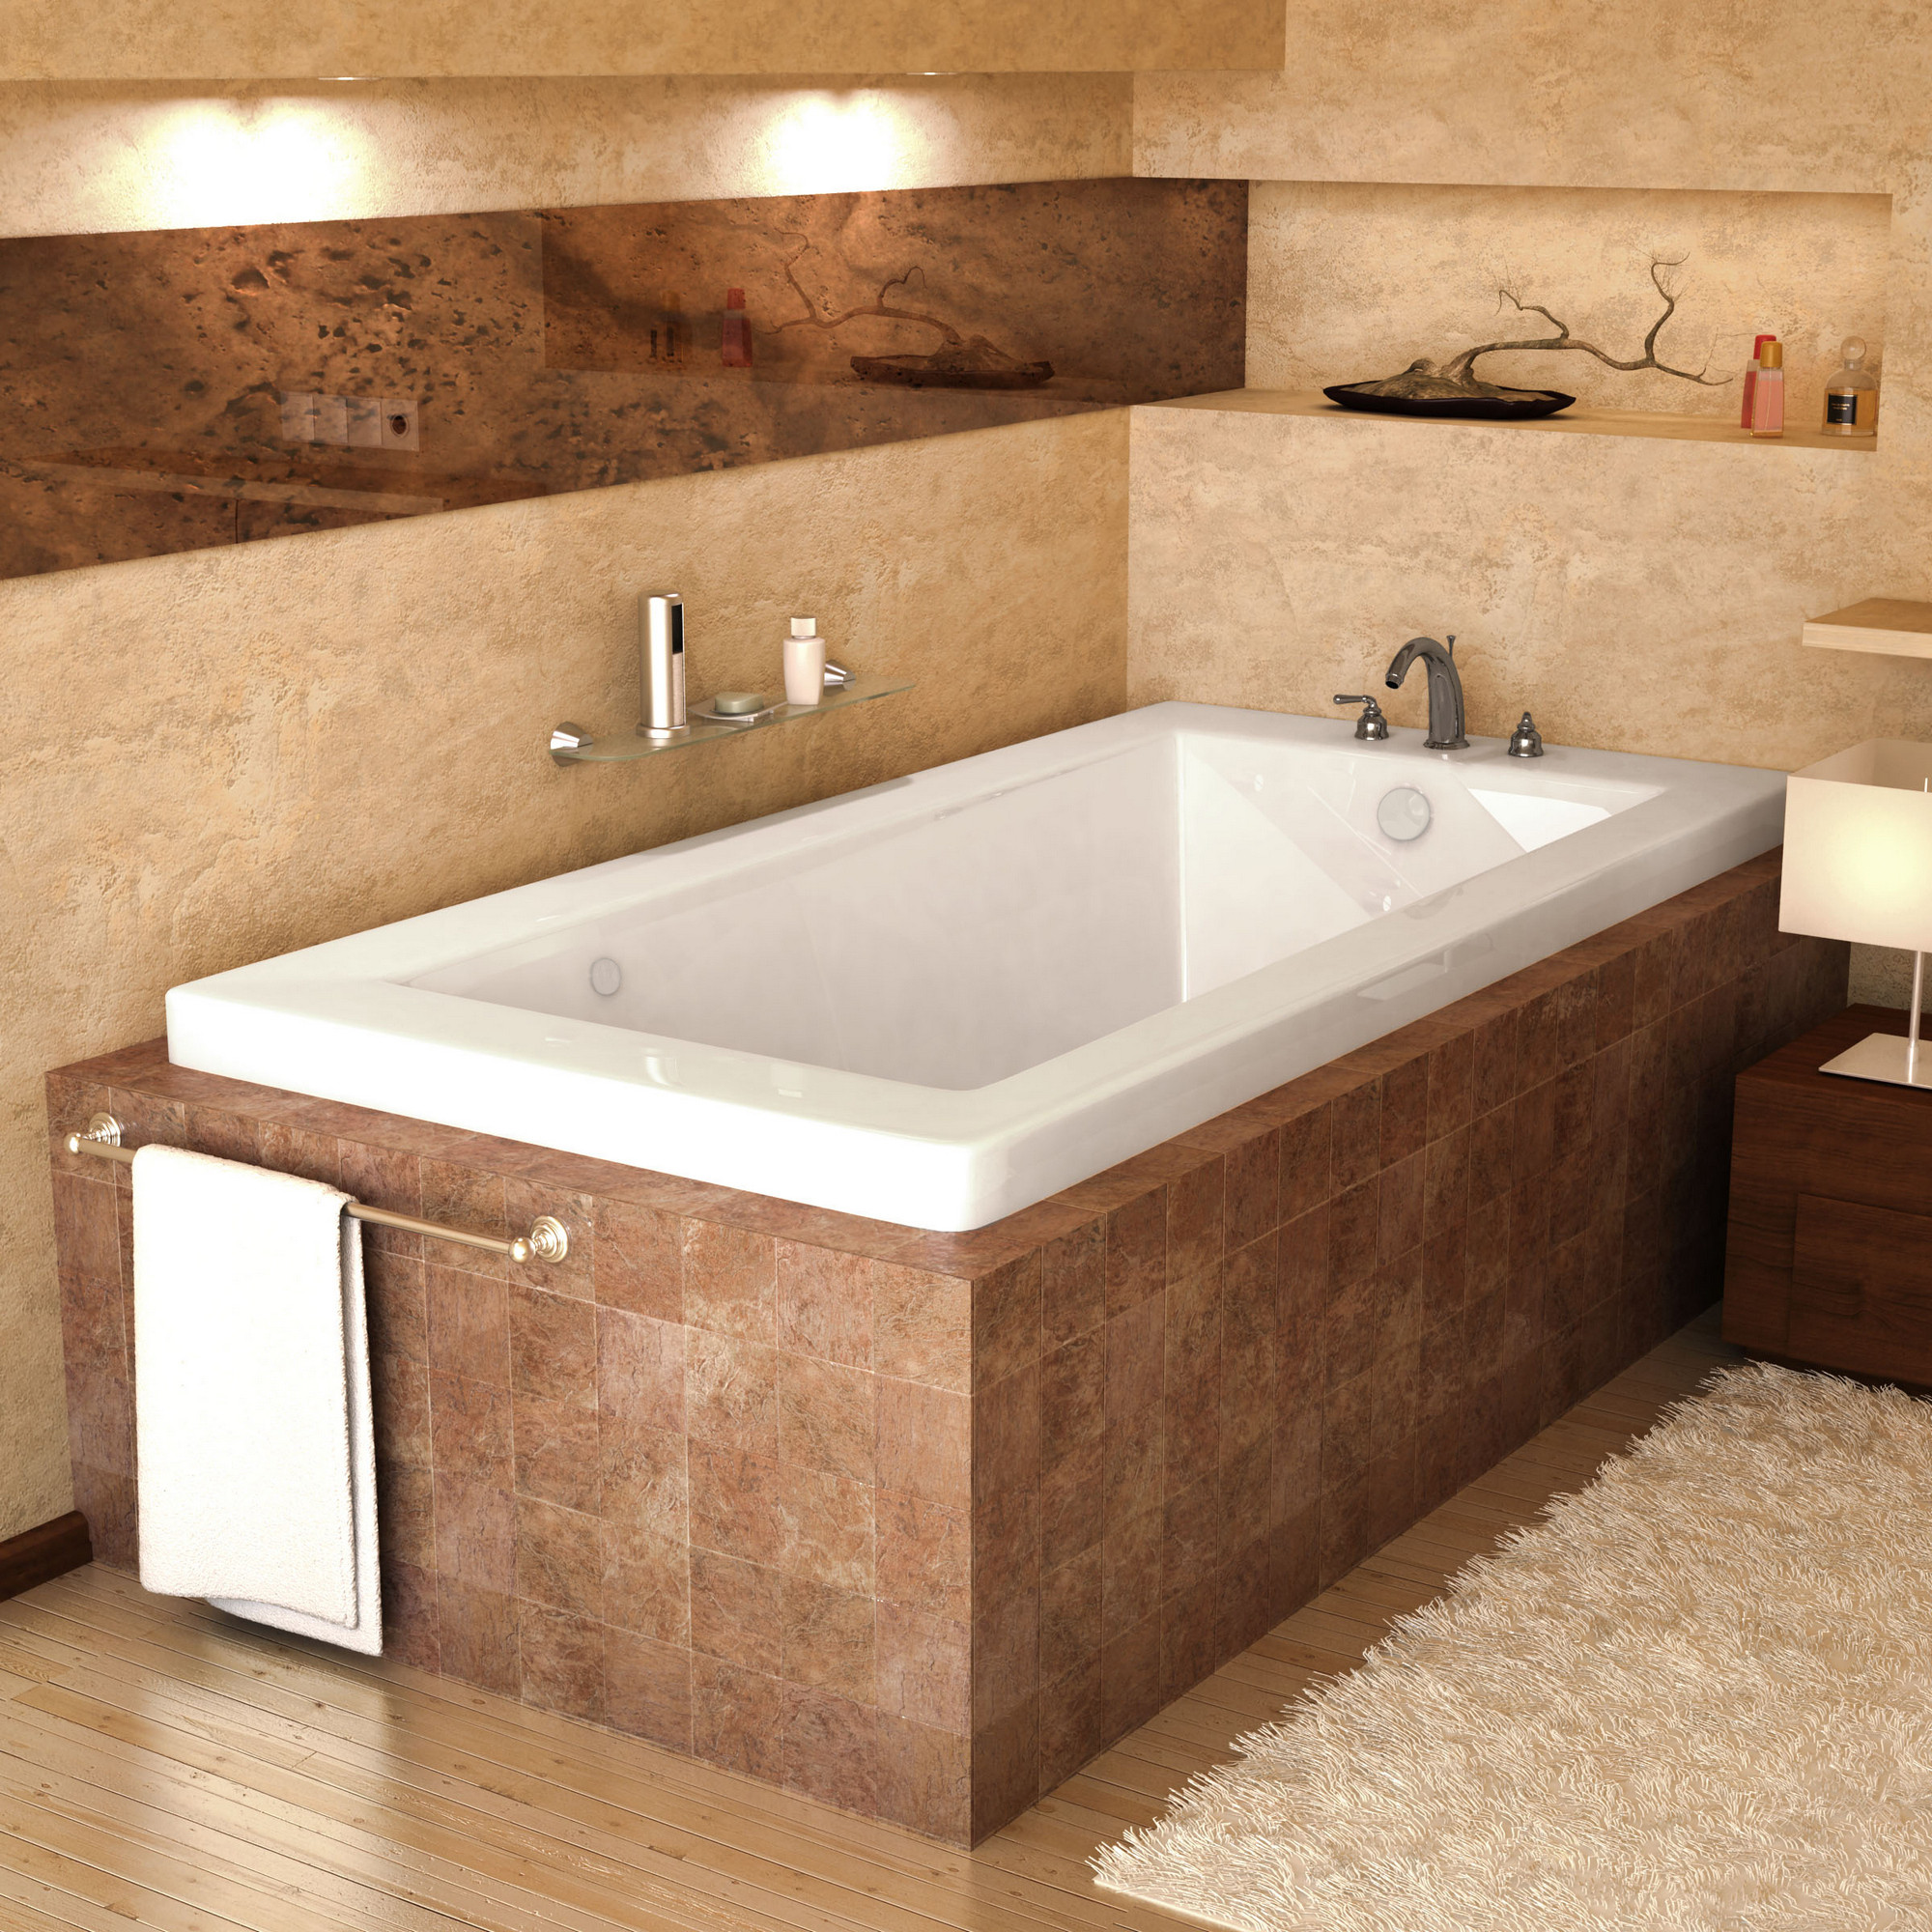 Meditub 3266VNAL Atlantis Venetian Rectangular Air Jet Tub With Left Drain